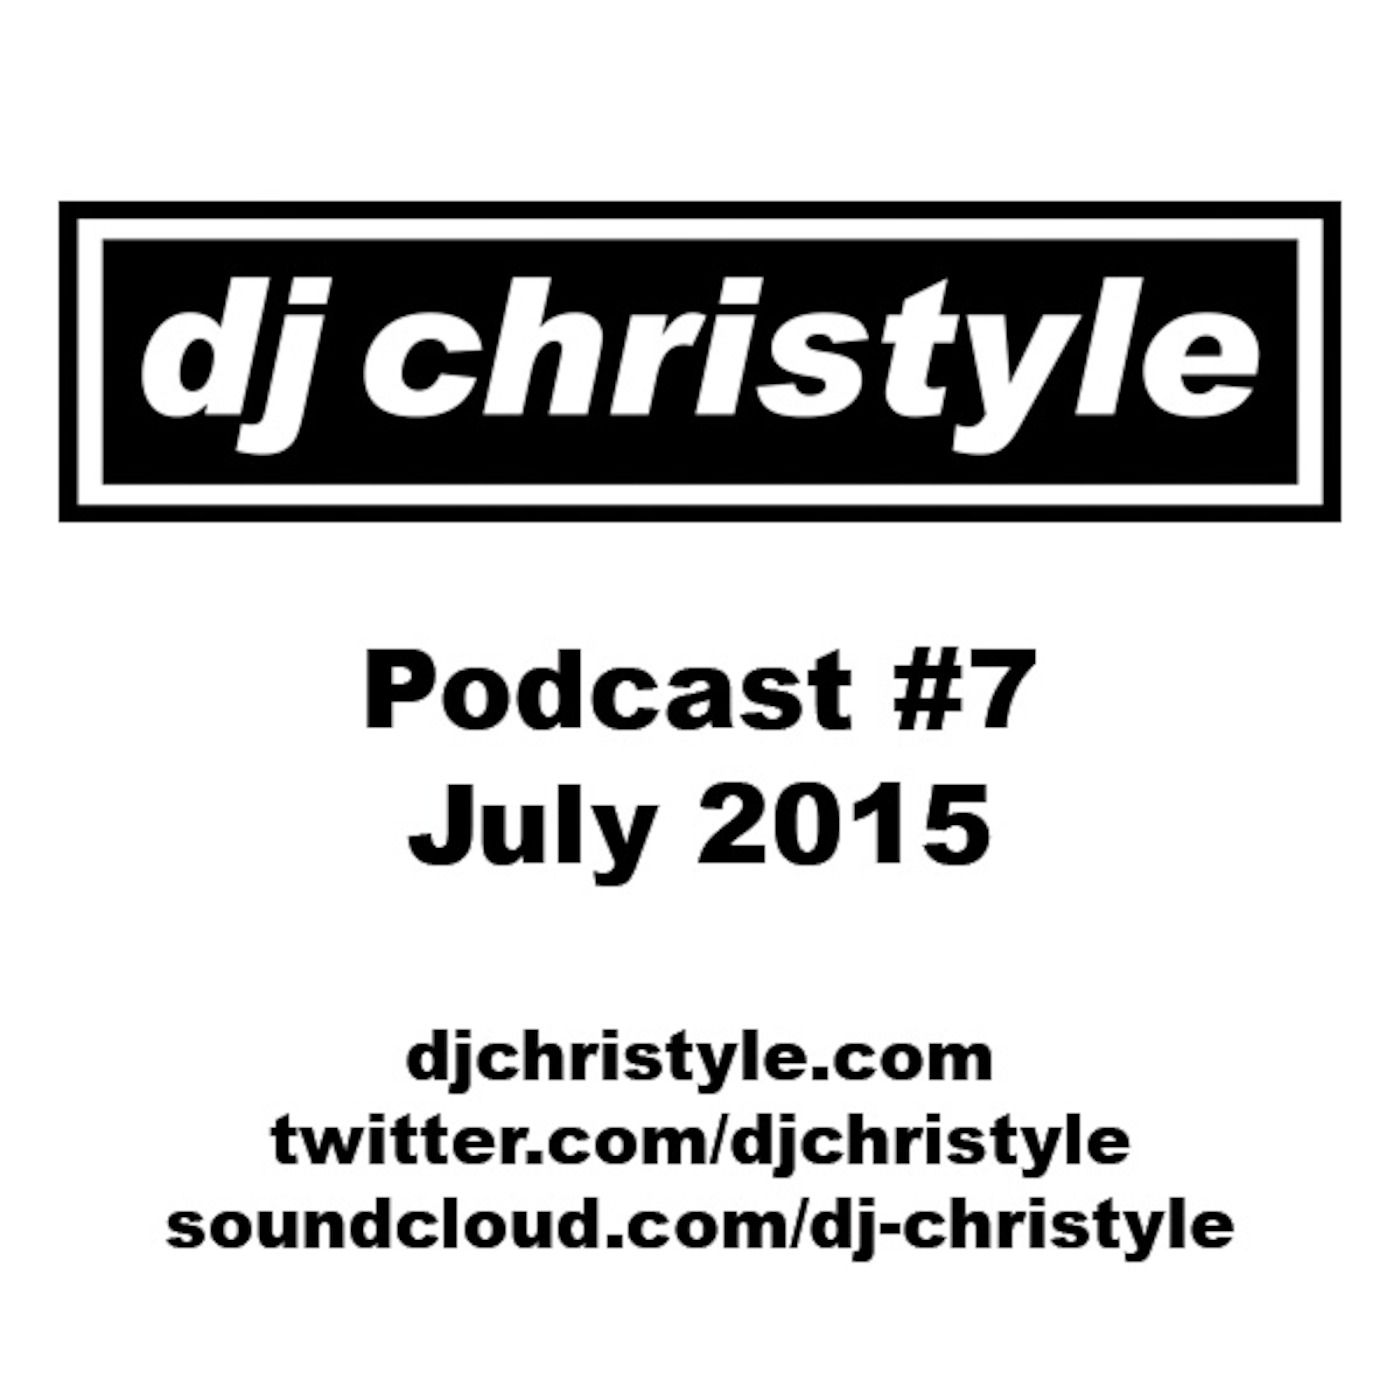 Episode 7 - July 2015 Podcast DJ Christyle podcast